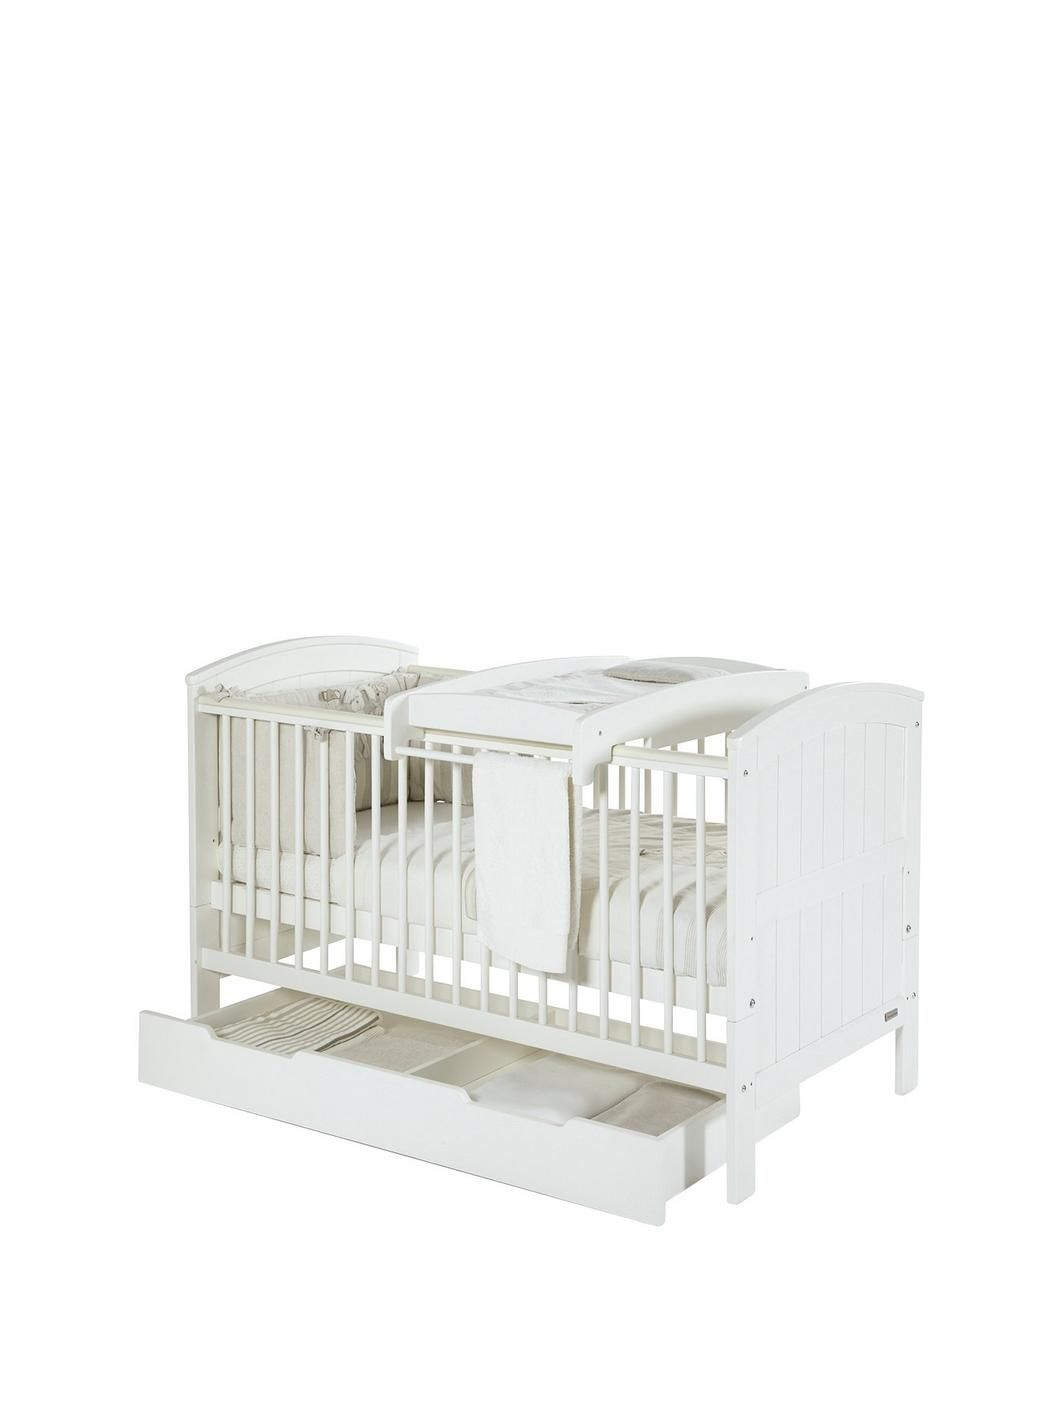 Hayworth Cot Bed Under Drawer And Cot Top Changer White